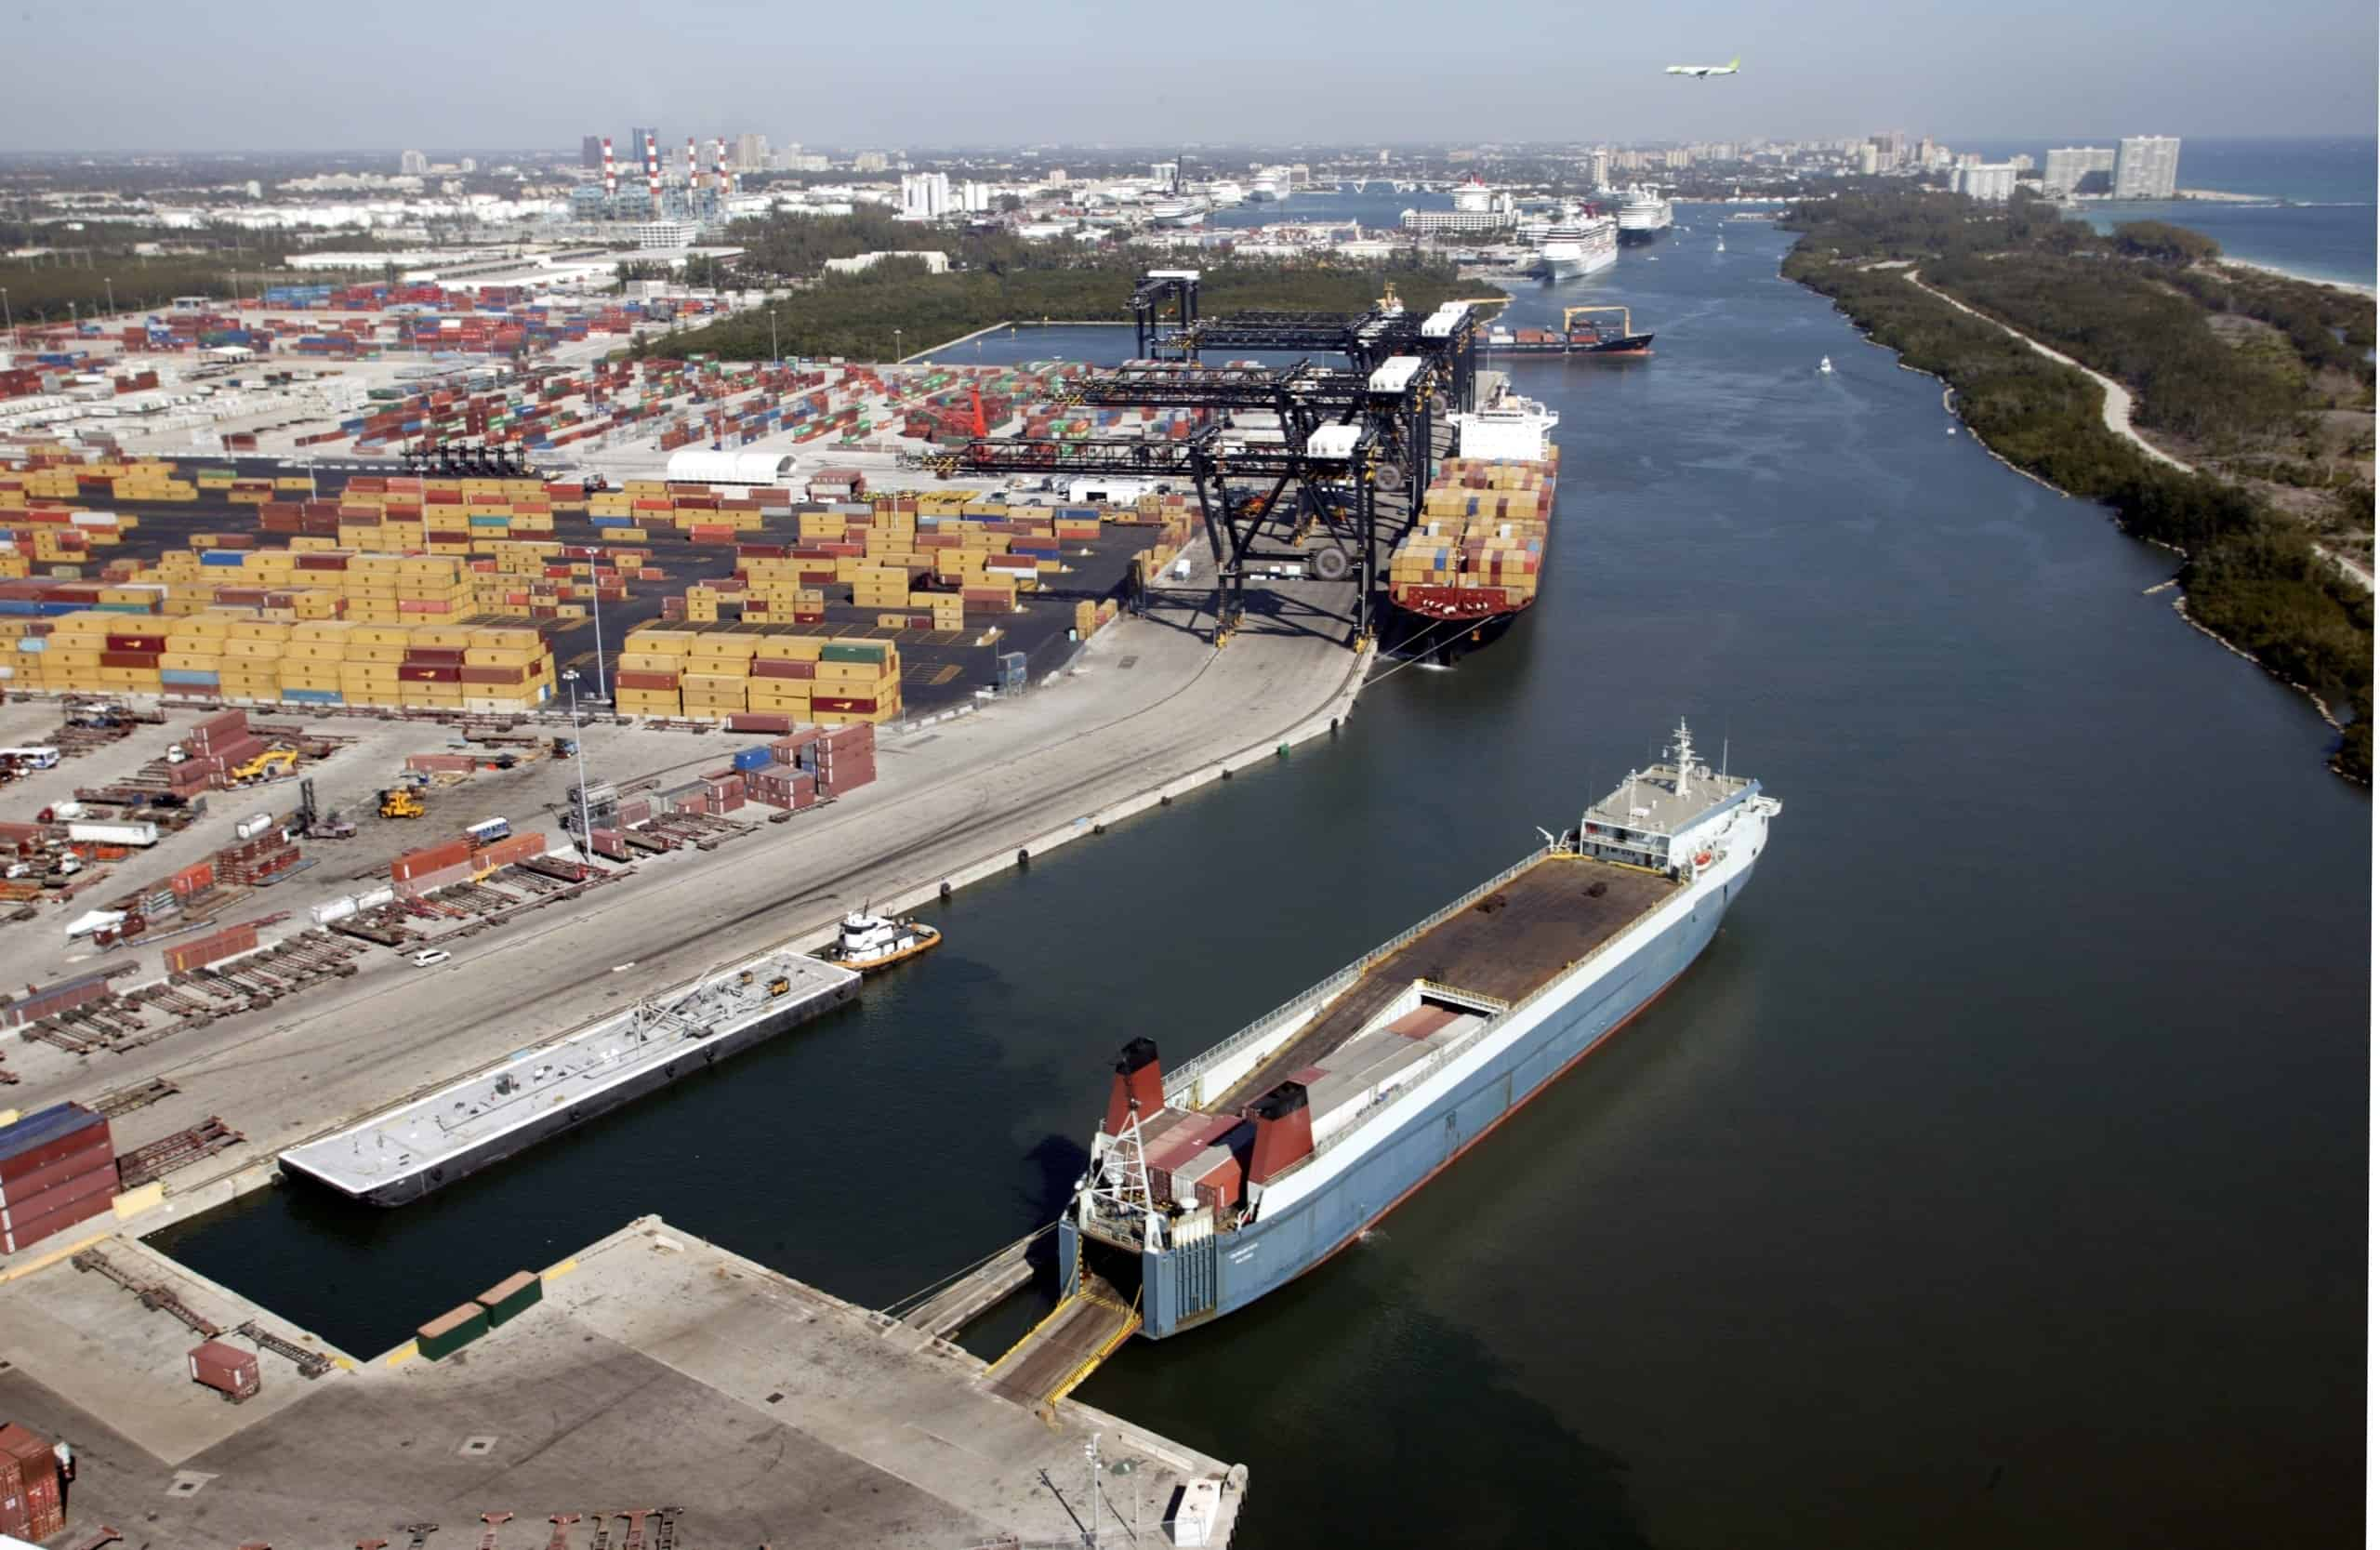 Crowley renews lease agreement for Port Everglades' terminal